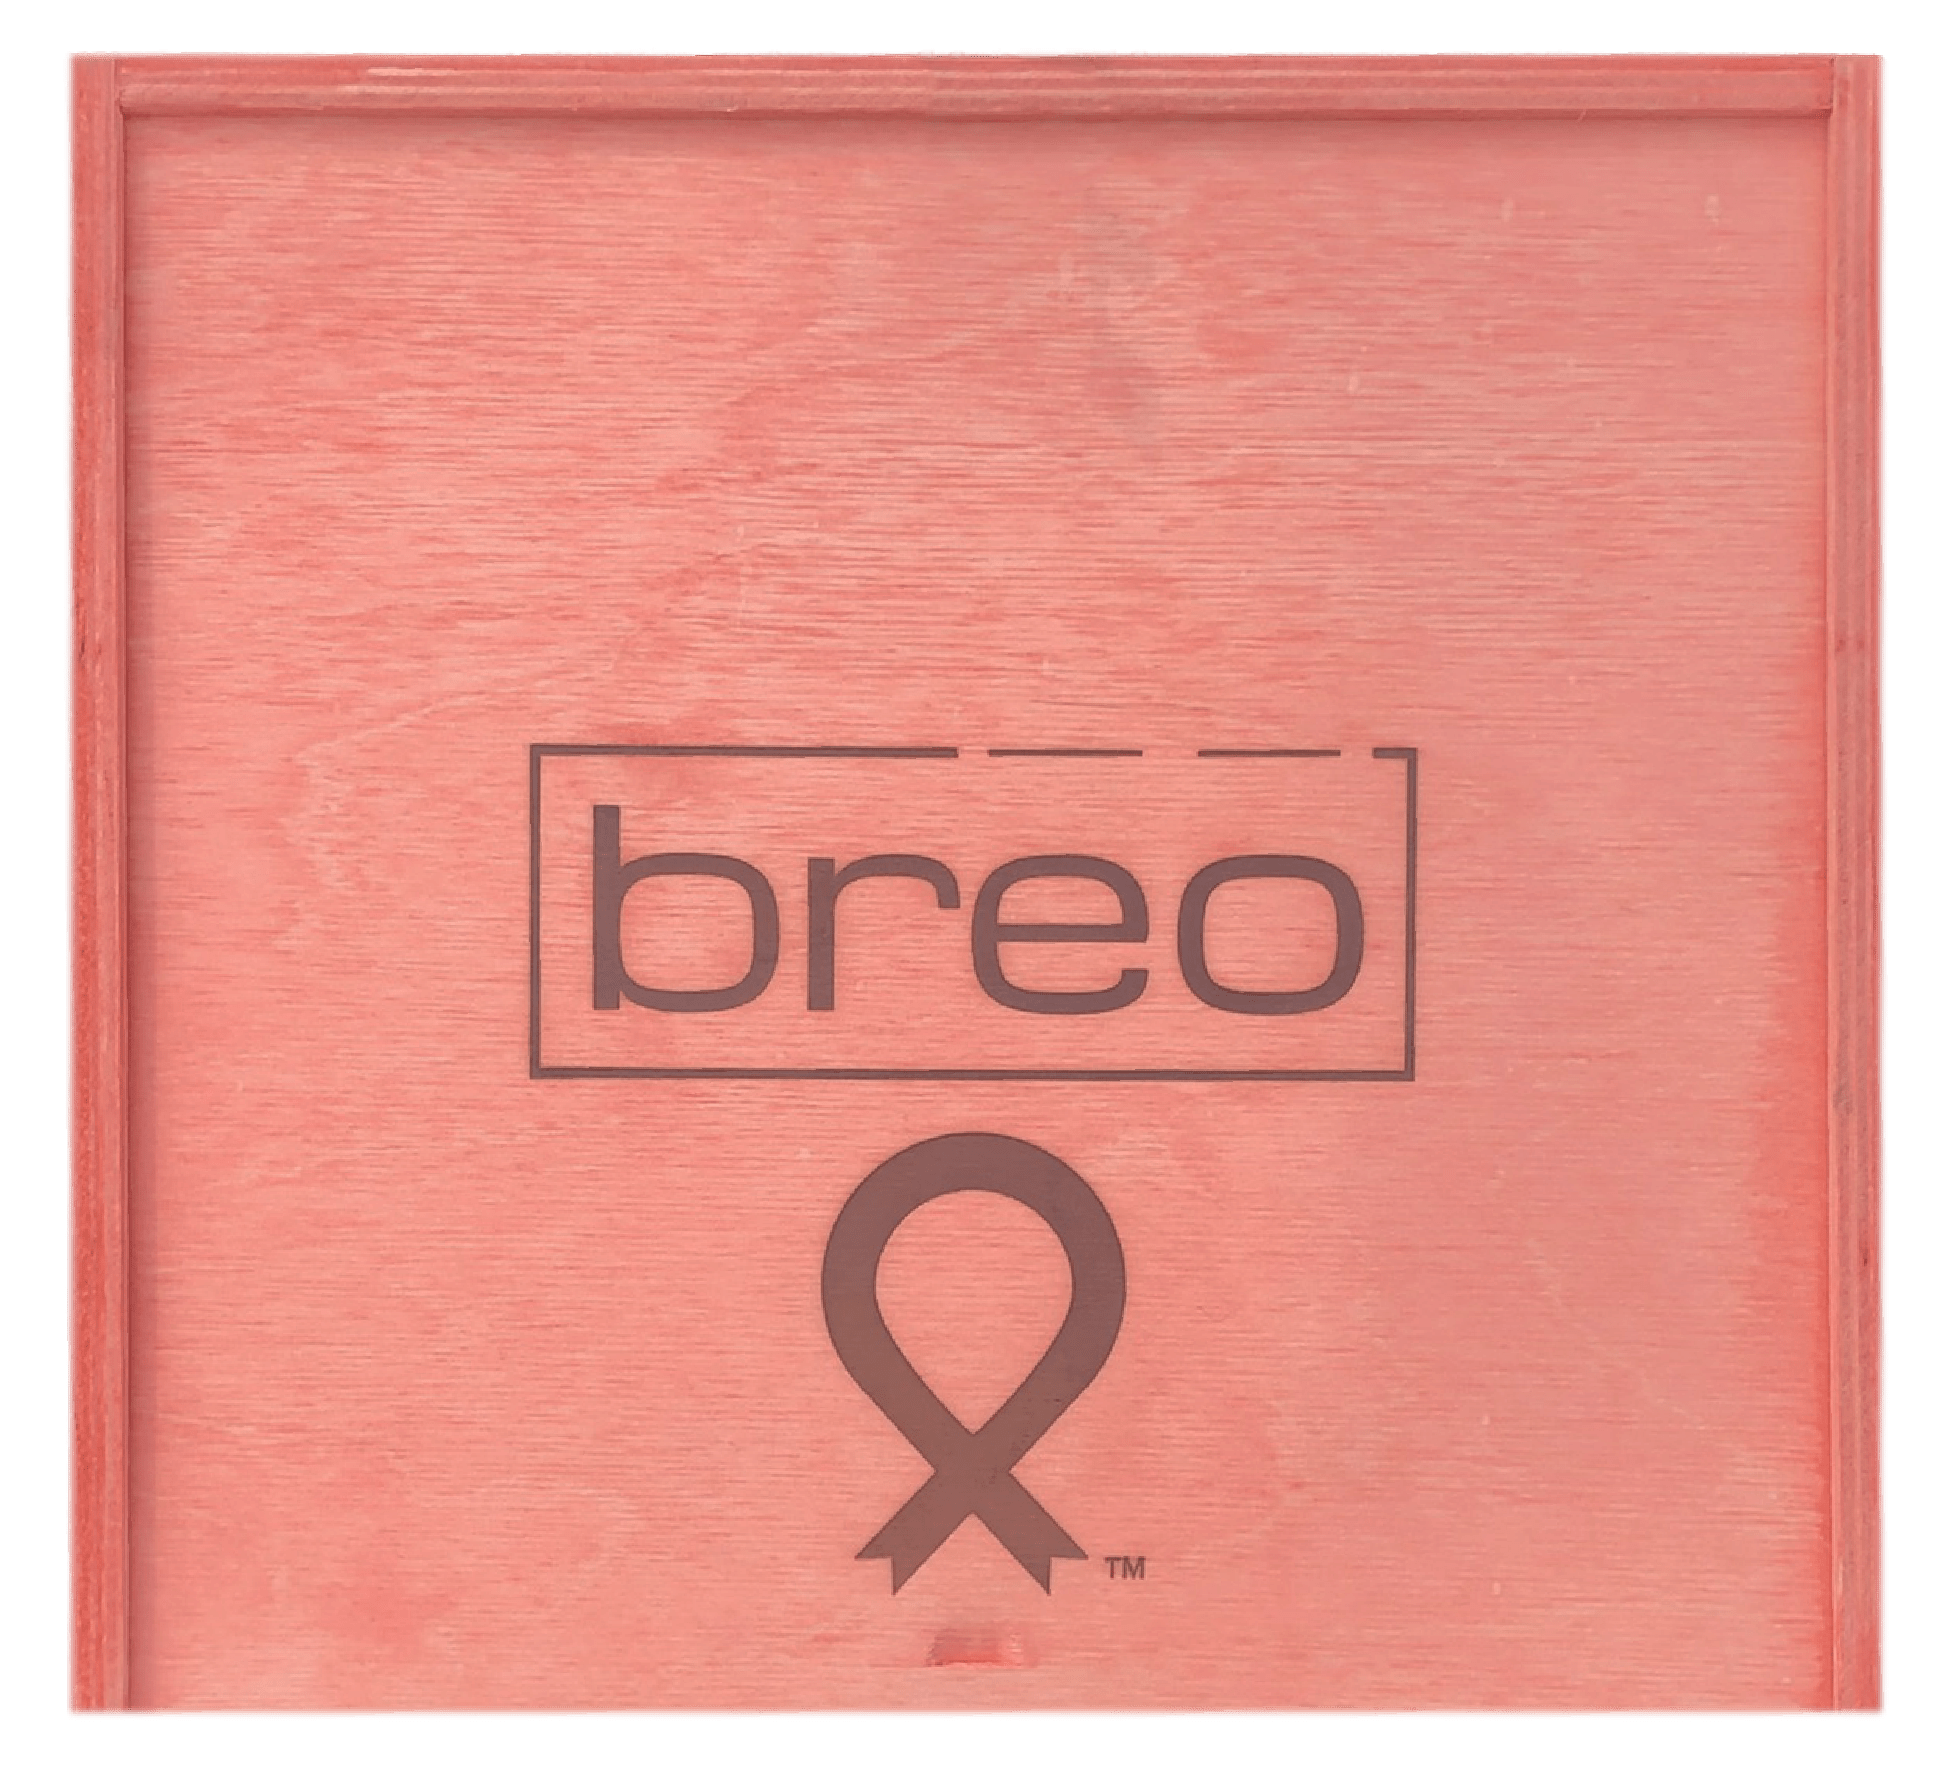 Breo Box Fall 2018 Spoiler #1 + Coupon